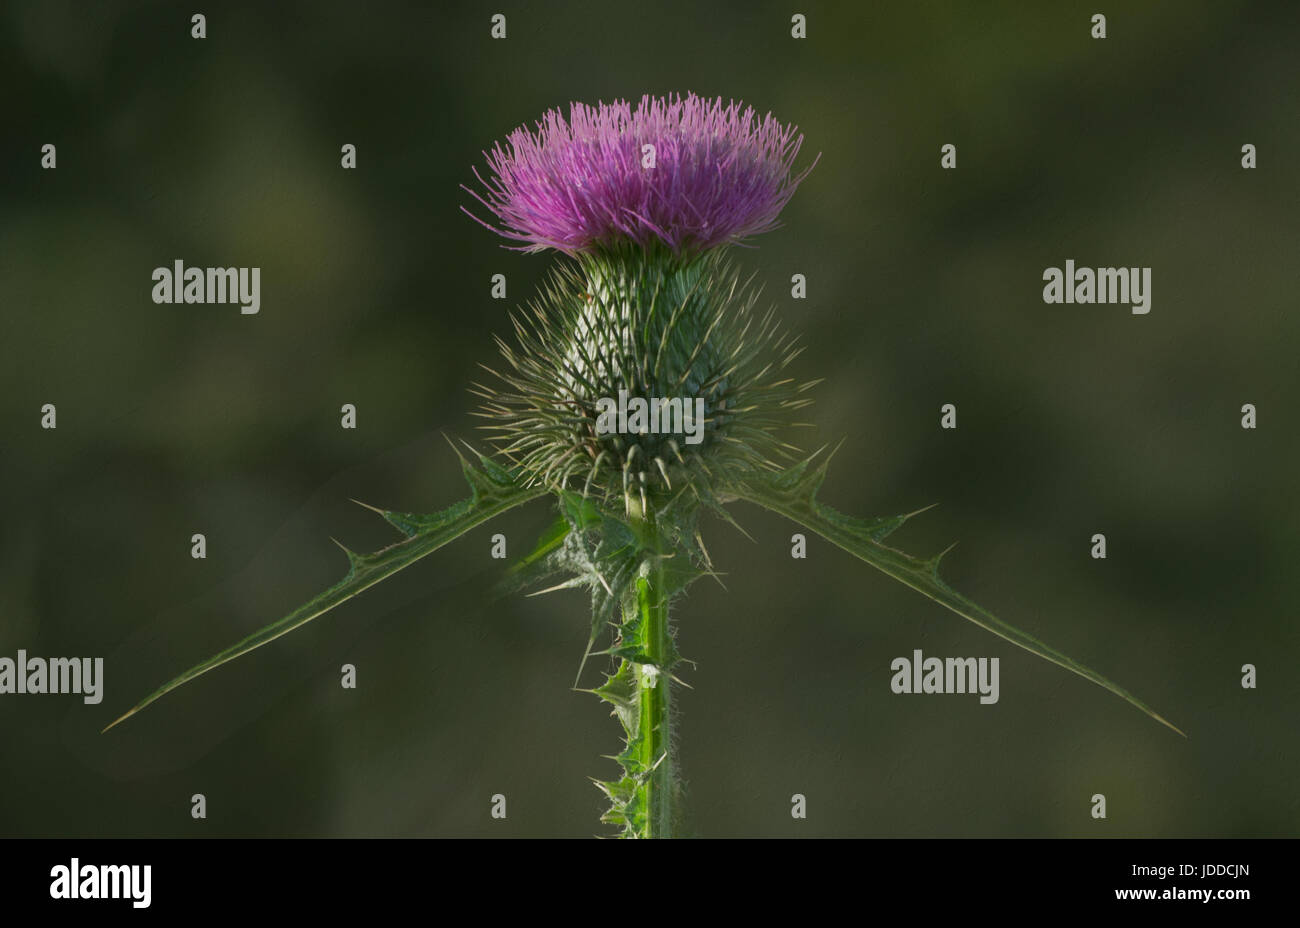 Bull Thistle straight on view - symmetry - Stock Image